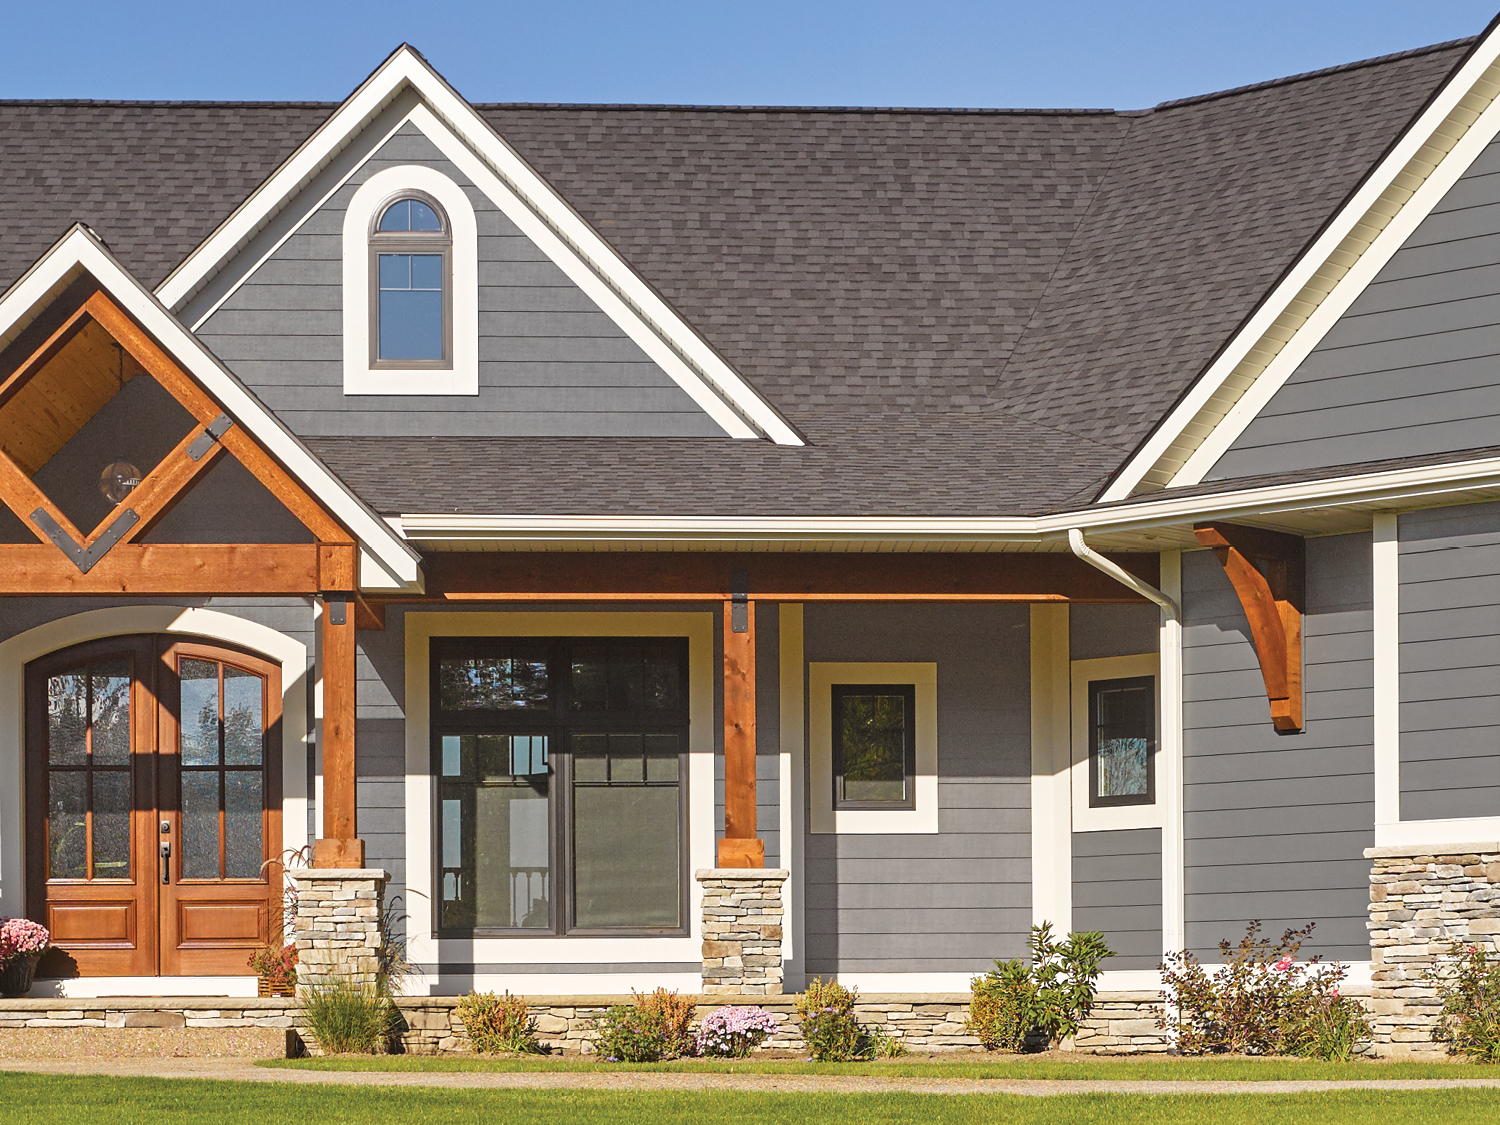 Exterior Siding: How Composite Siding Can Save You Money On Energy Costs